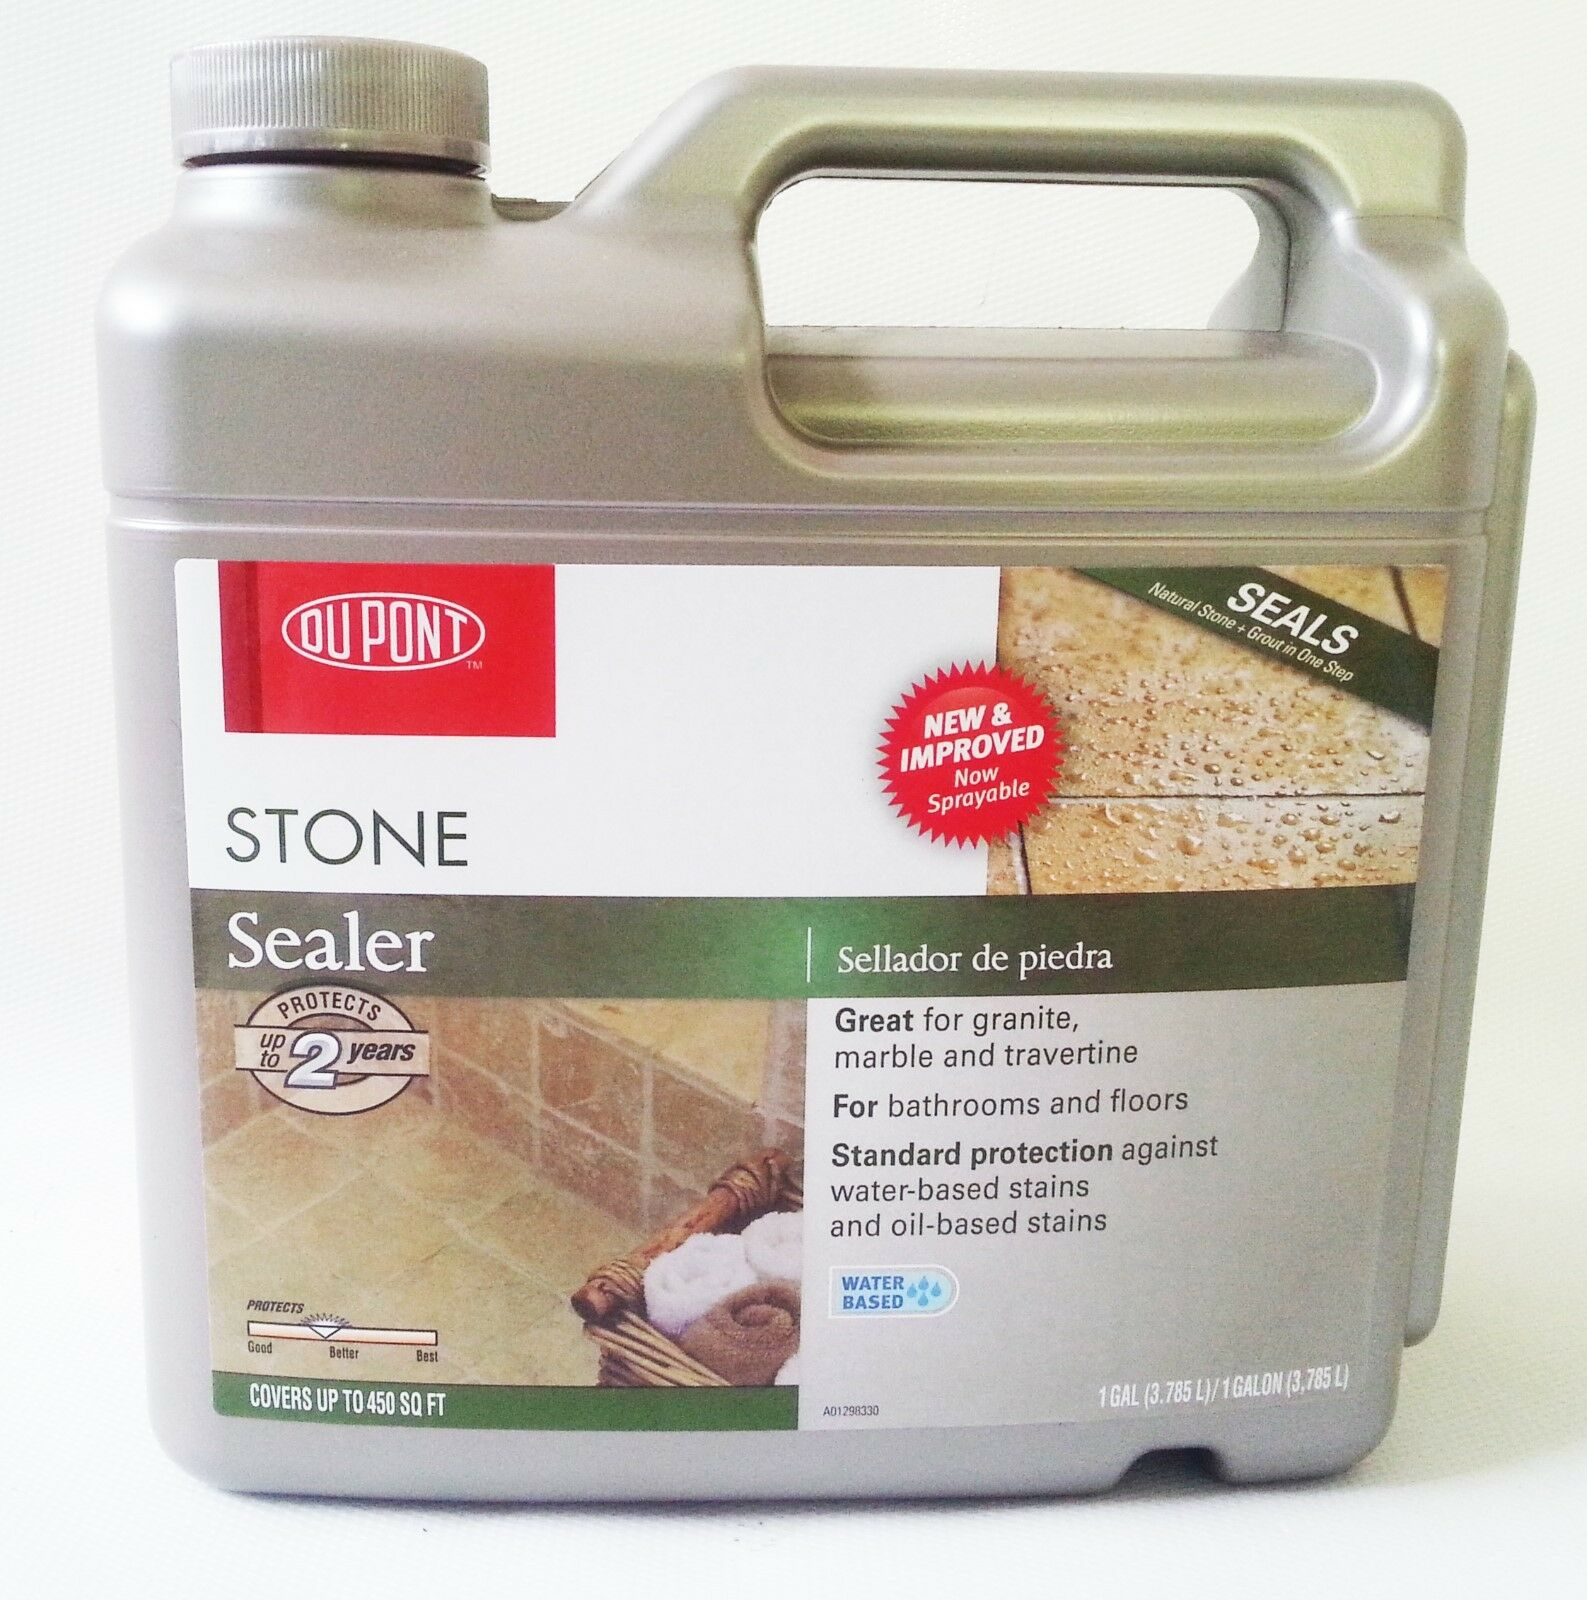 DuPont Natural Stone Granite Marble & Grout Tile Sealer for Floor 1 Gallon New